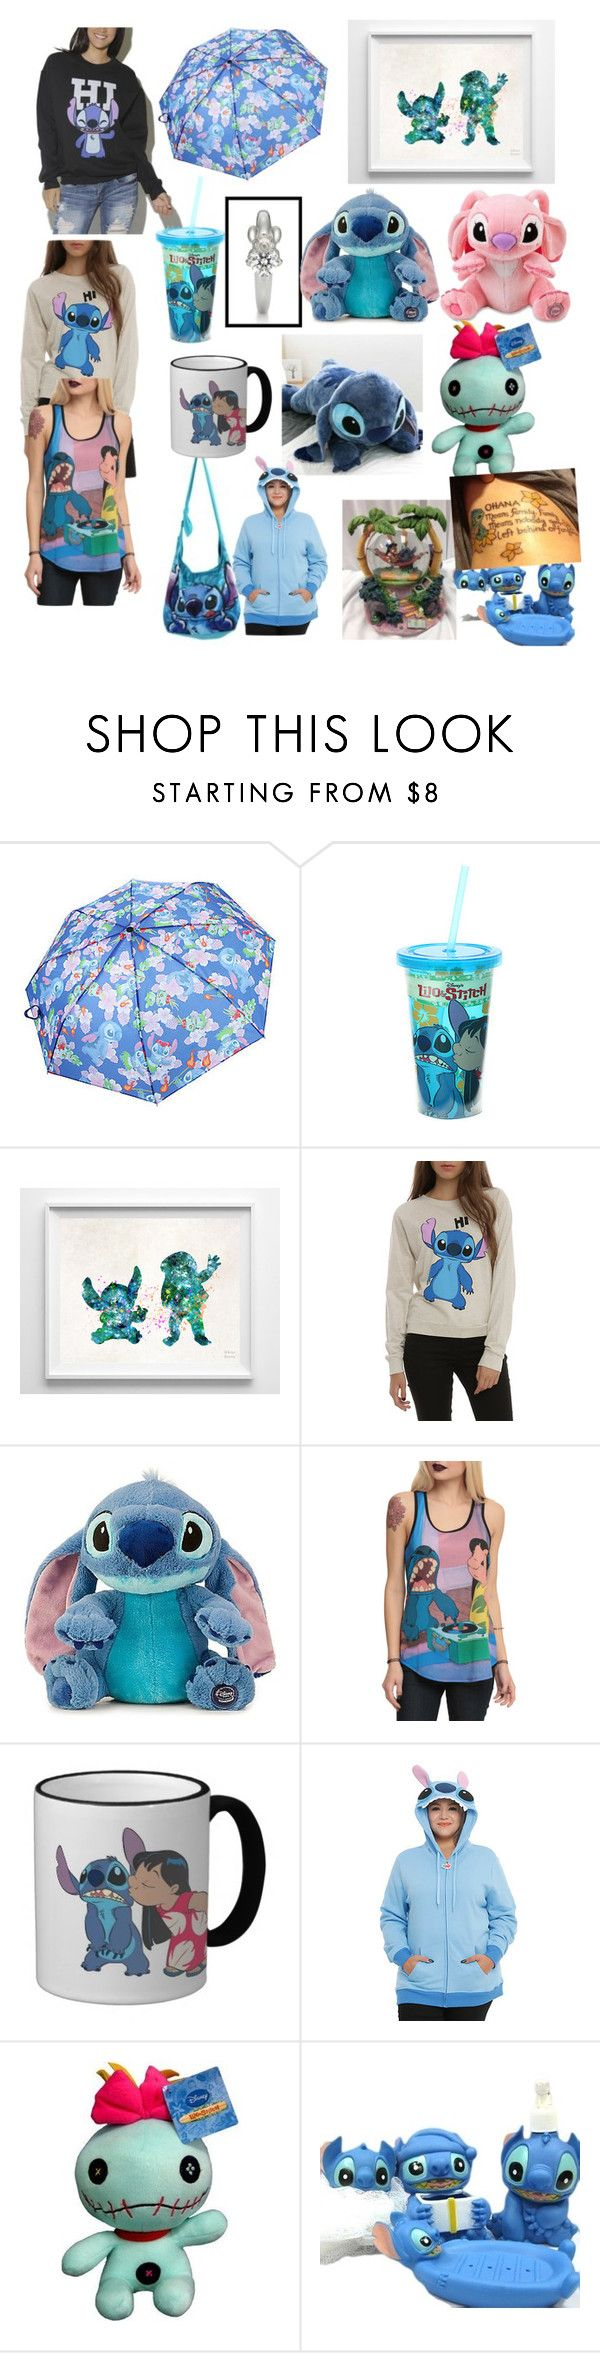 """Lilo and stitch ☺️"" by ruizdestiny ❤ liked on Polyvore featuring Disney and INC International Concepts"